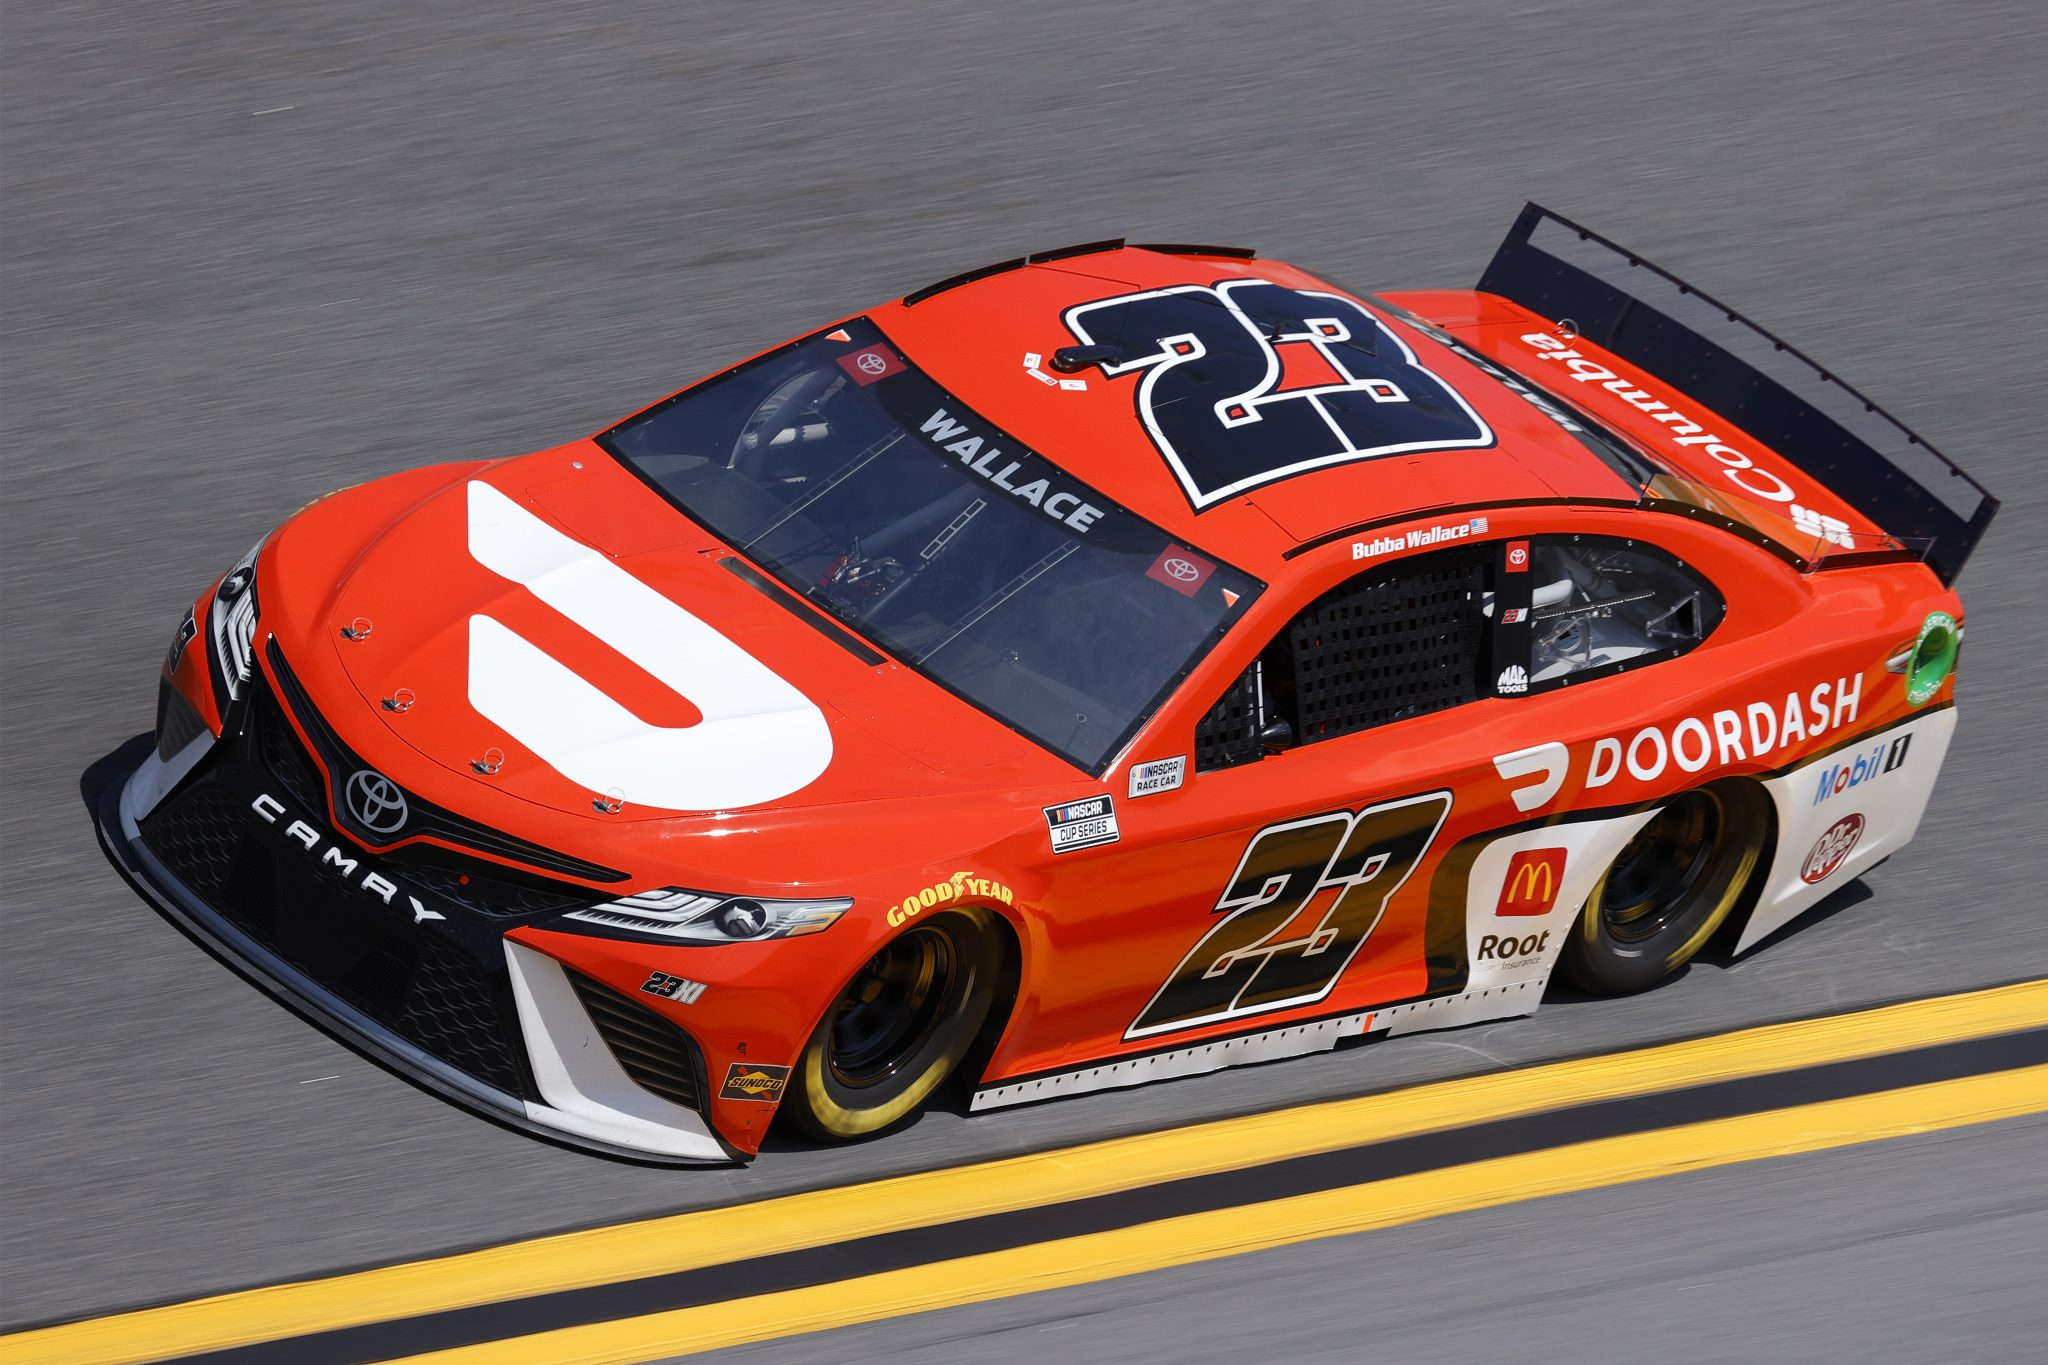 DAYTONA BEACH, FLORIDA - FEBRUARY 10: Bubba Wallace, driver of the #23 DoorDash Toyota, drives during practice for the NASCAR Cup Series 63rd Annual Daytona 500 at Daytona International Speedway on February 10, 2021 in Daytona Beach, Florida. (Photo by Jared C. Tilton/Getty Images) | Getty Images